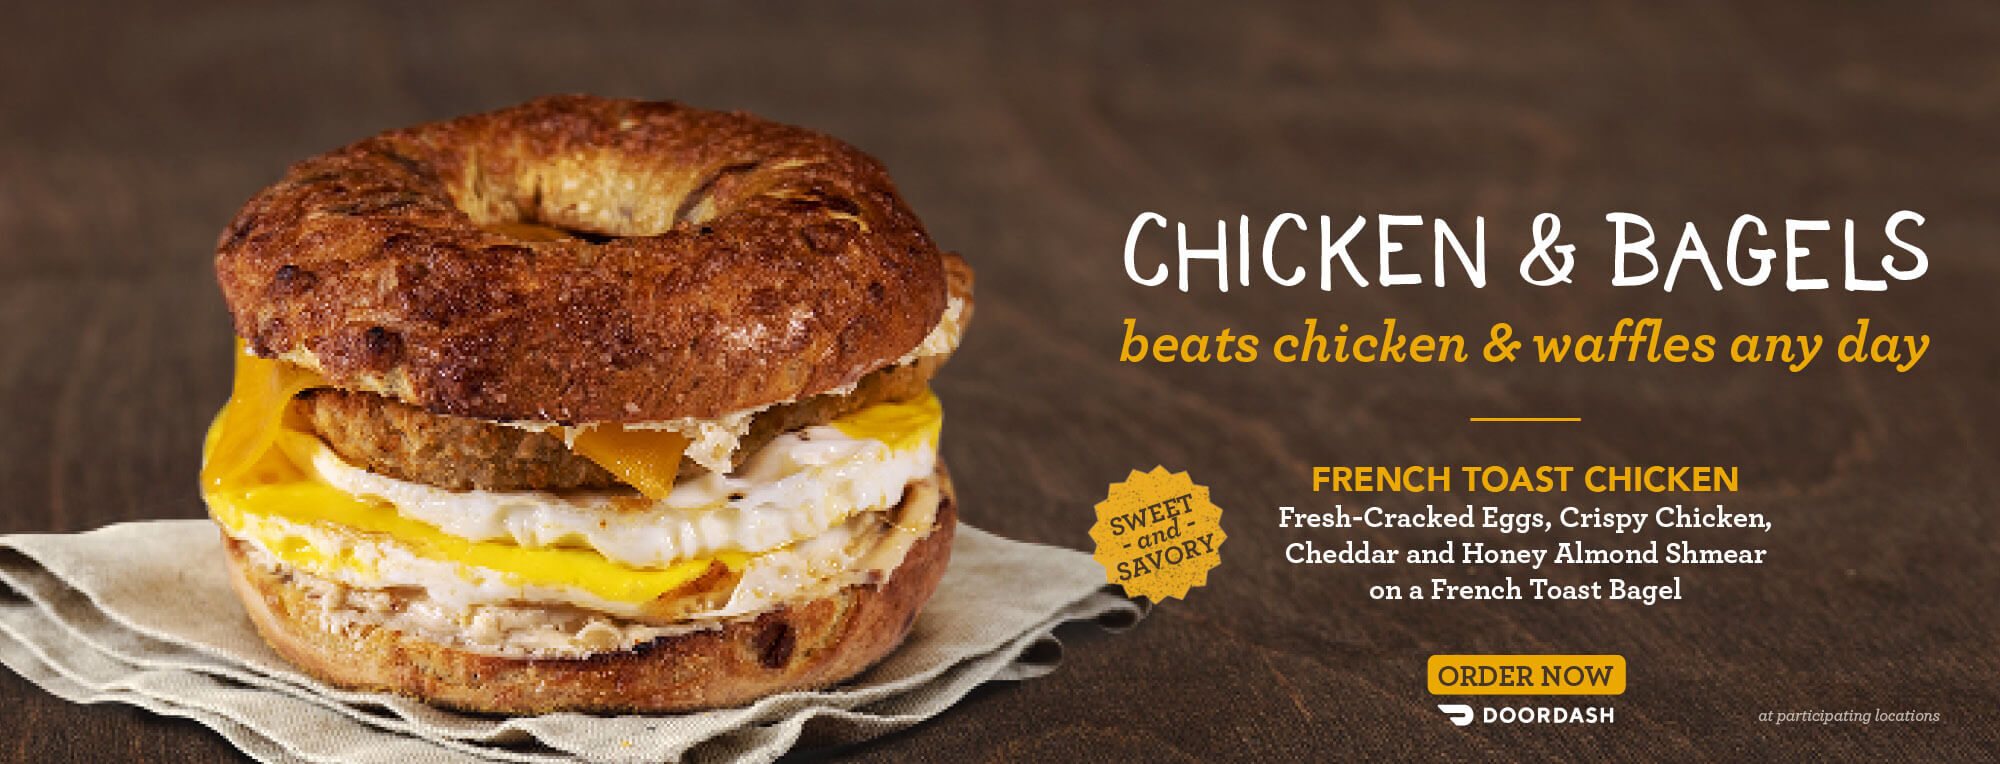 ROTATING SLIDER: Try our new French Toast Chicken Egg Sandwich! Available for a Limited Time